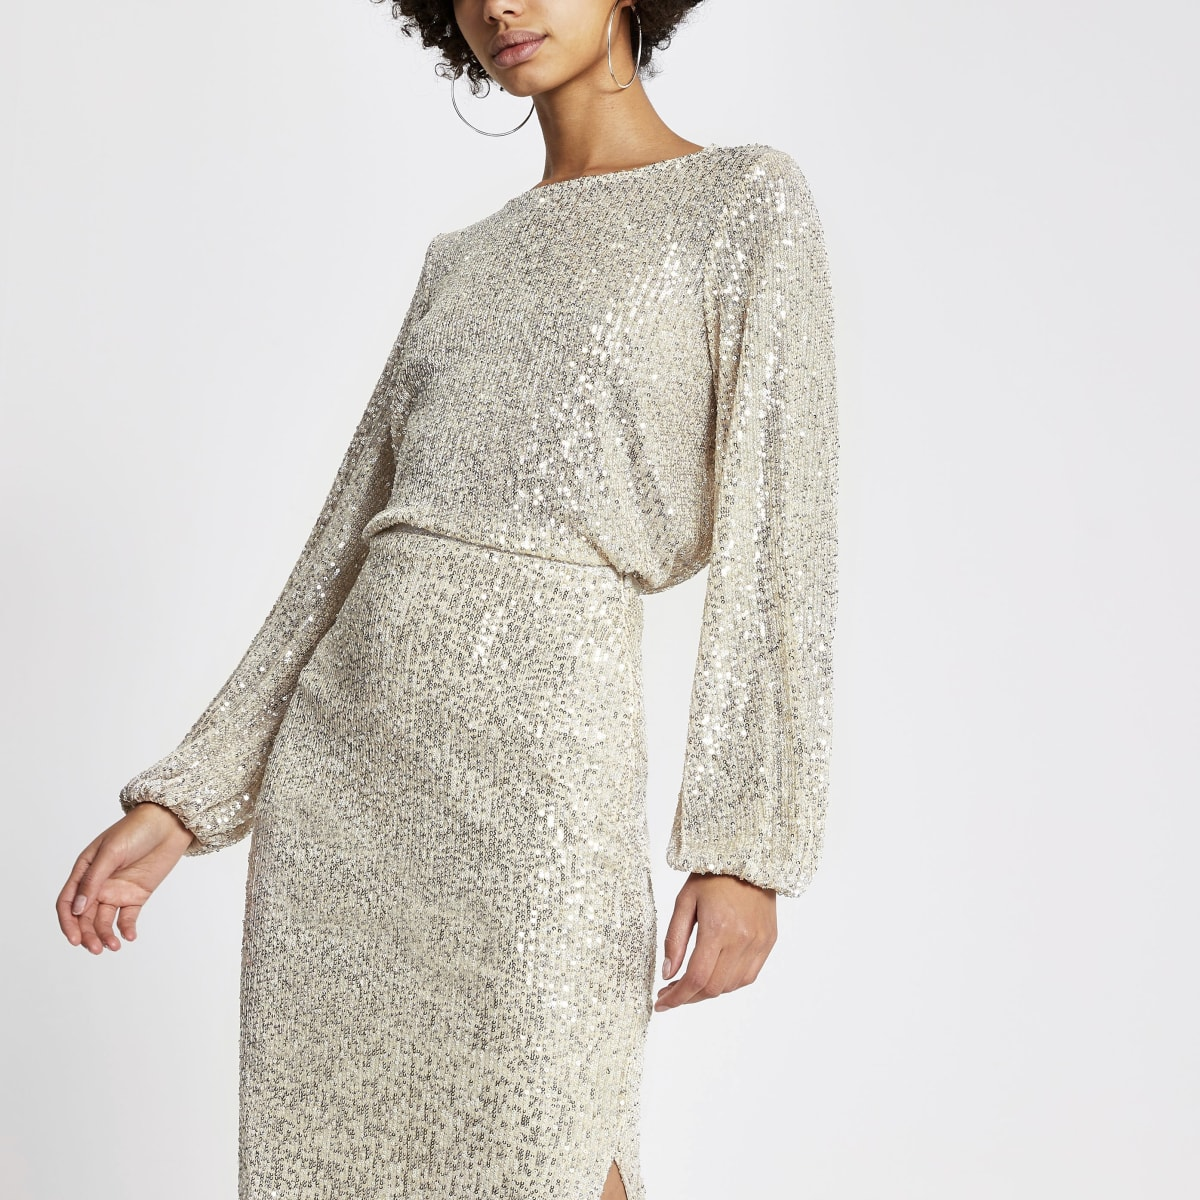 Silver sequin long balloon sleeve top